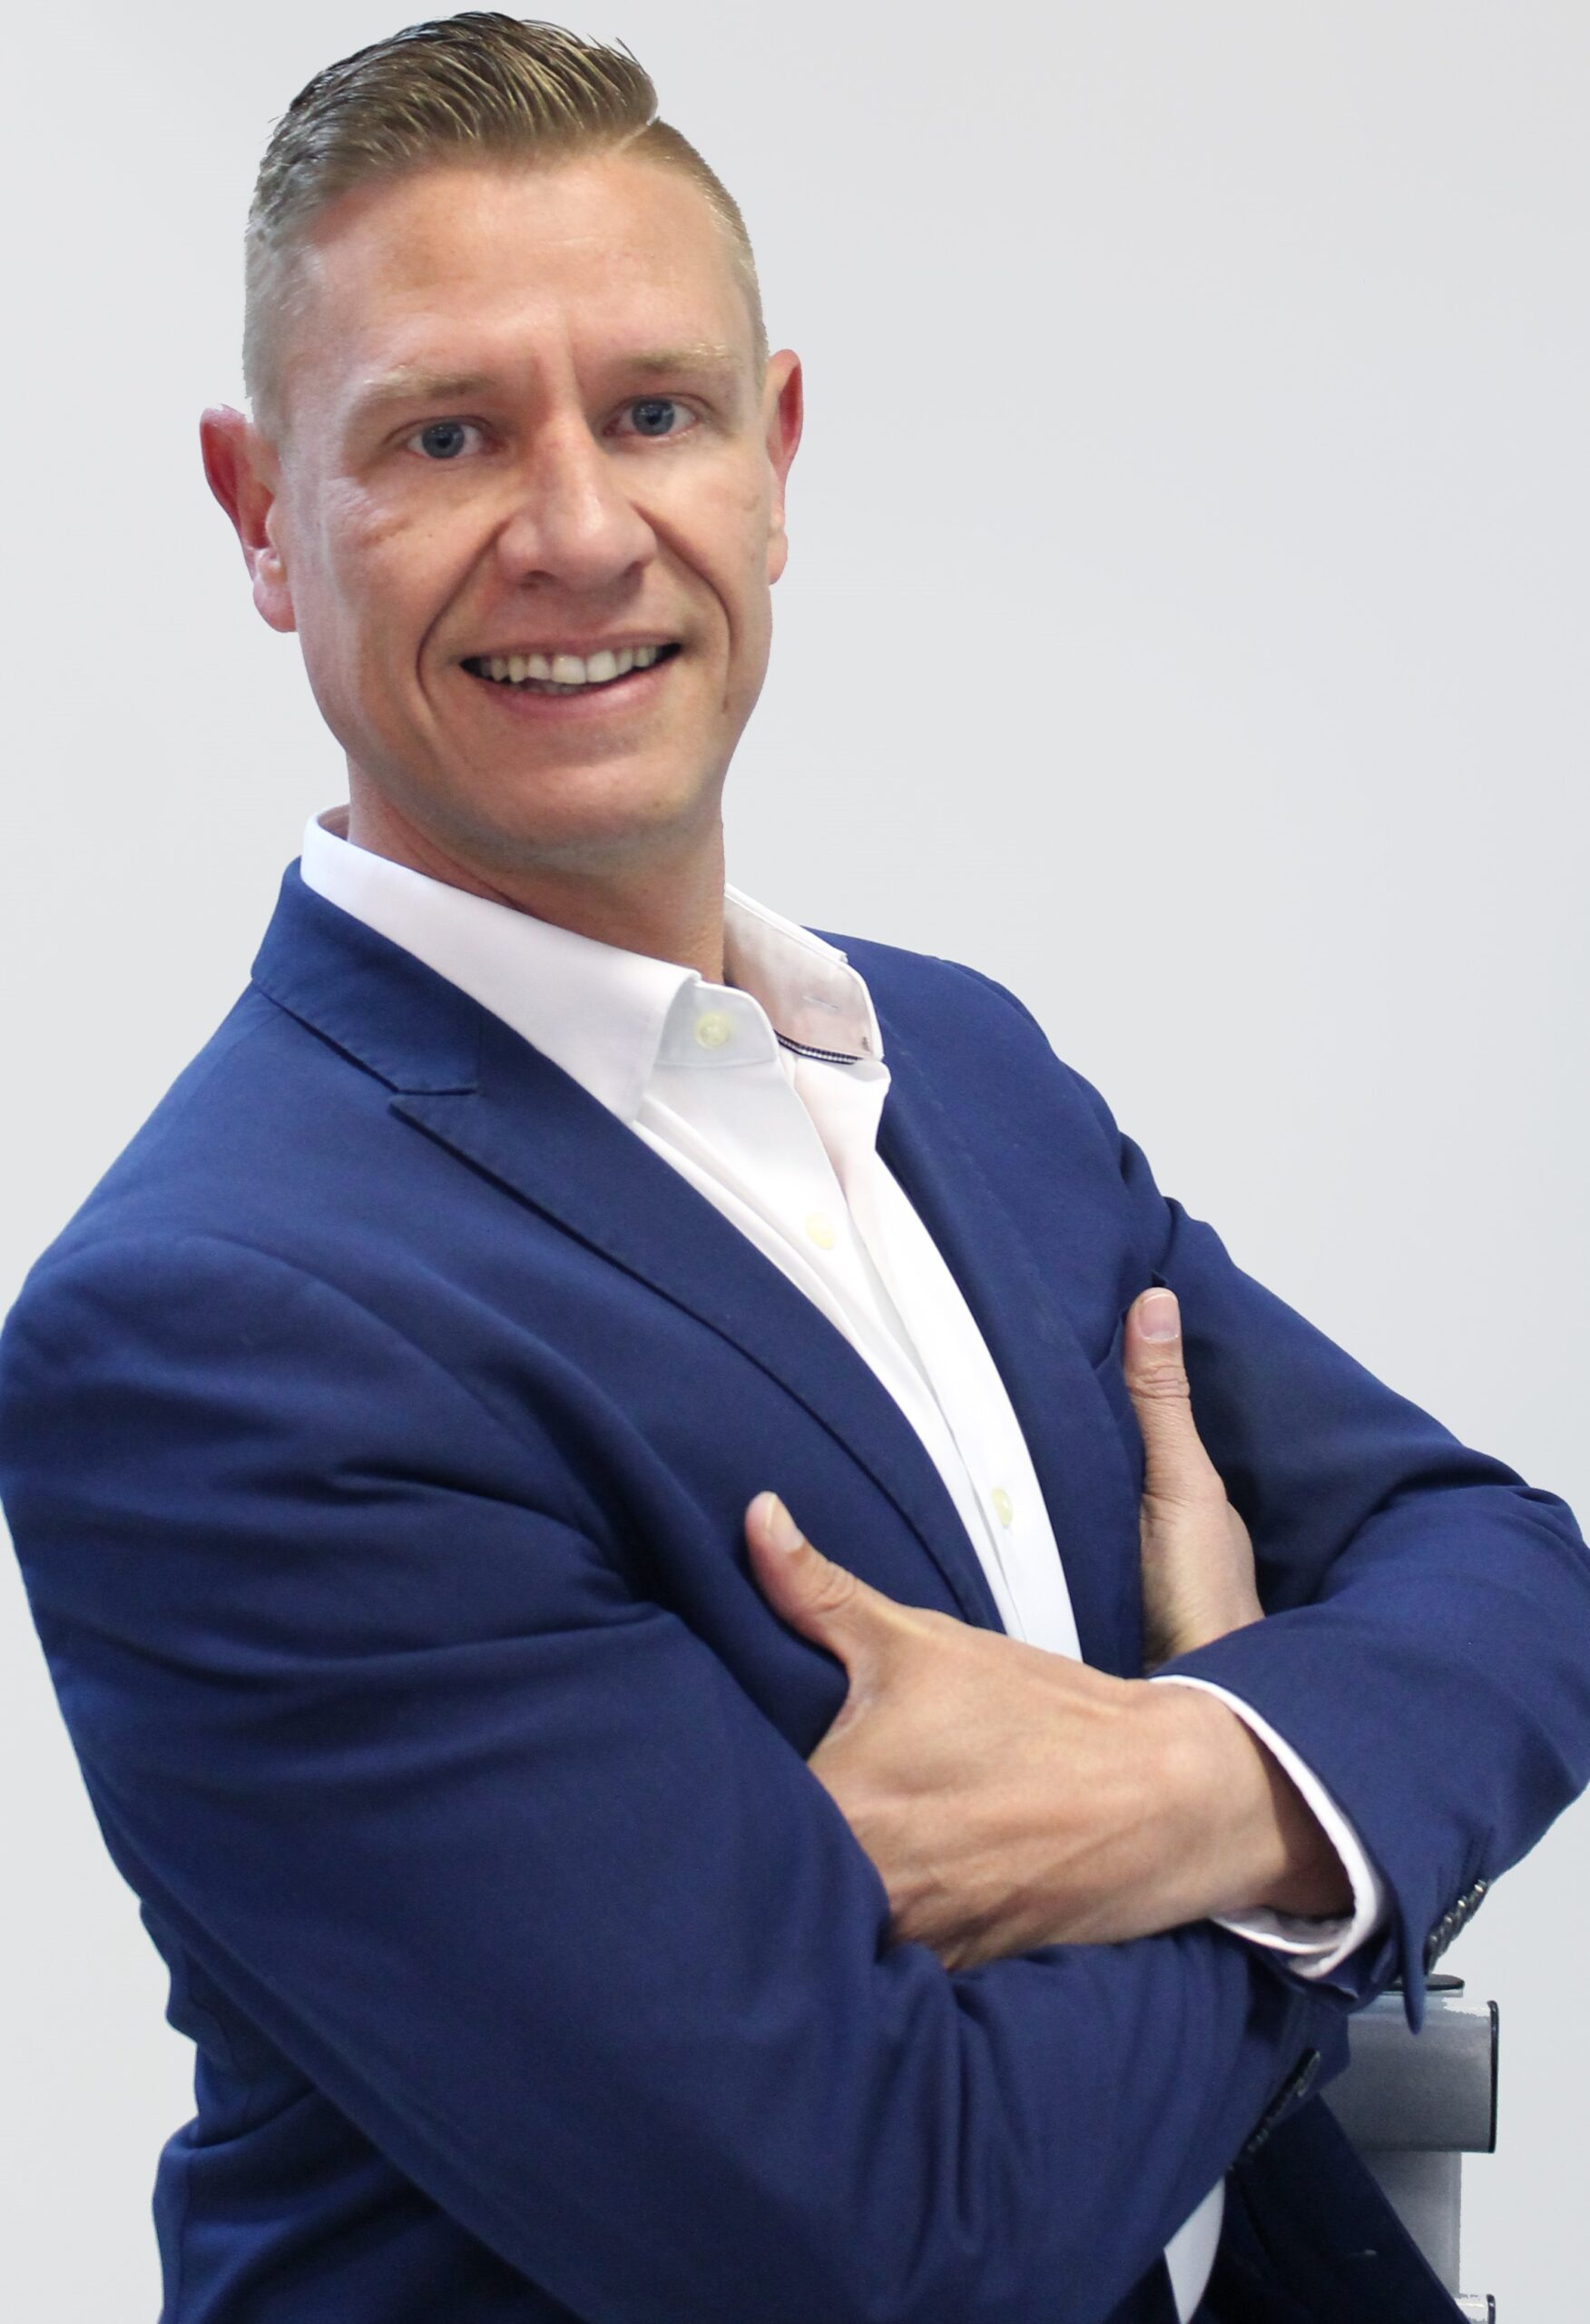 Profile picture of Neil Smith a realtor from Remax